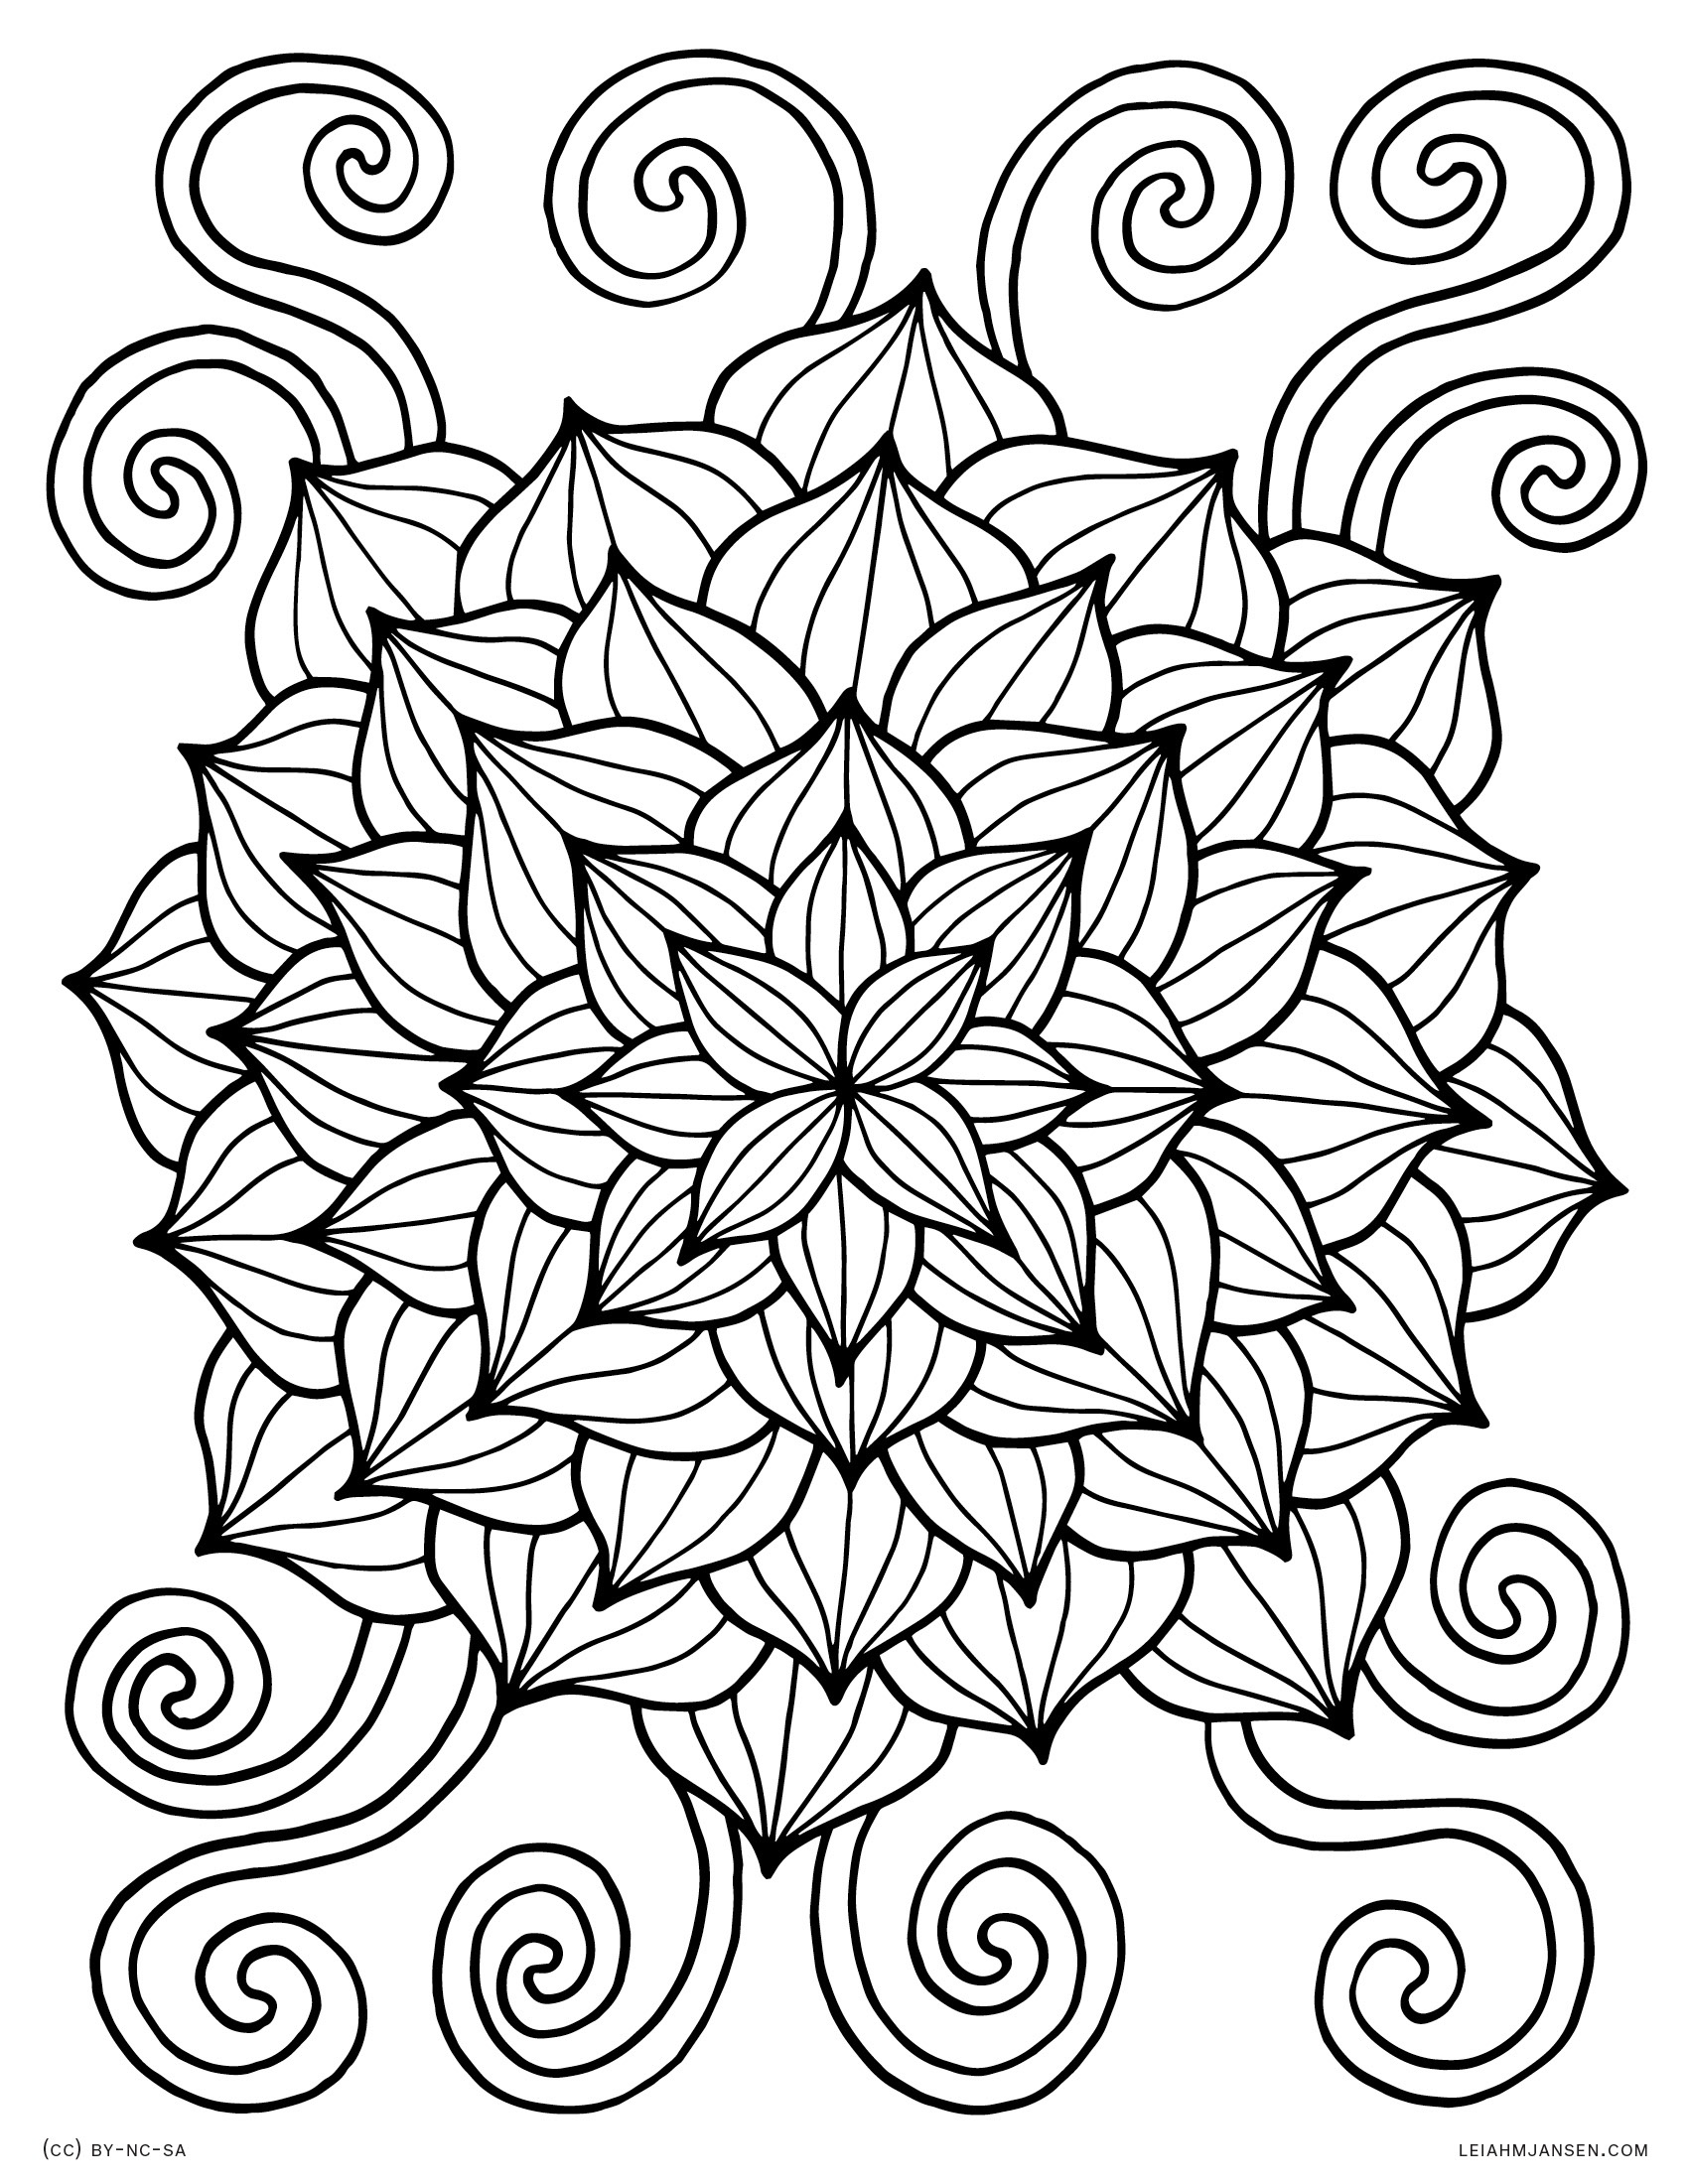 Coloring Pages - Free Printable Coloring Books